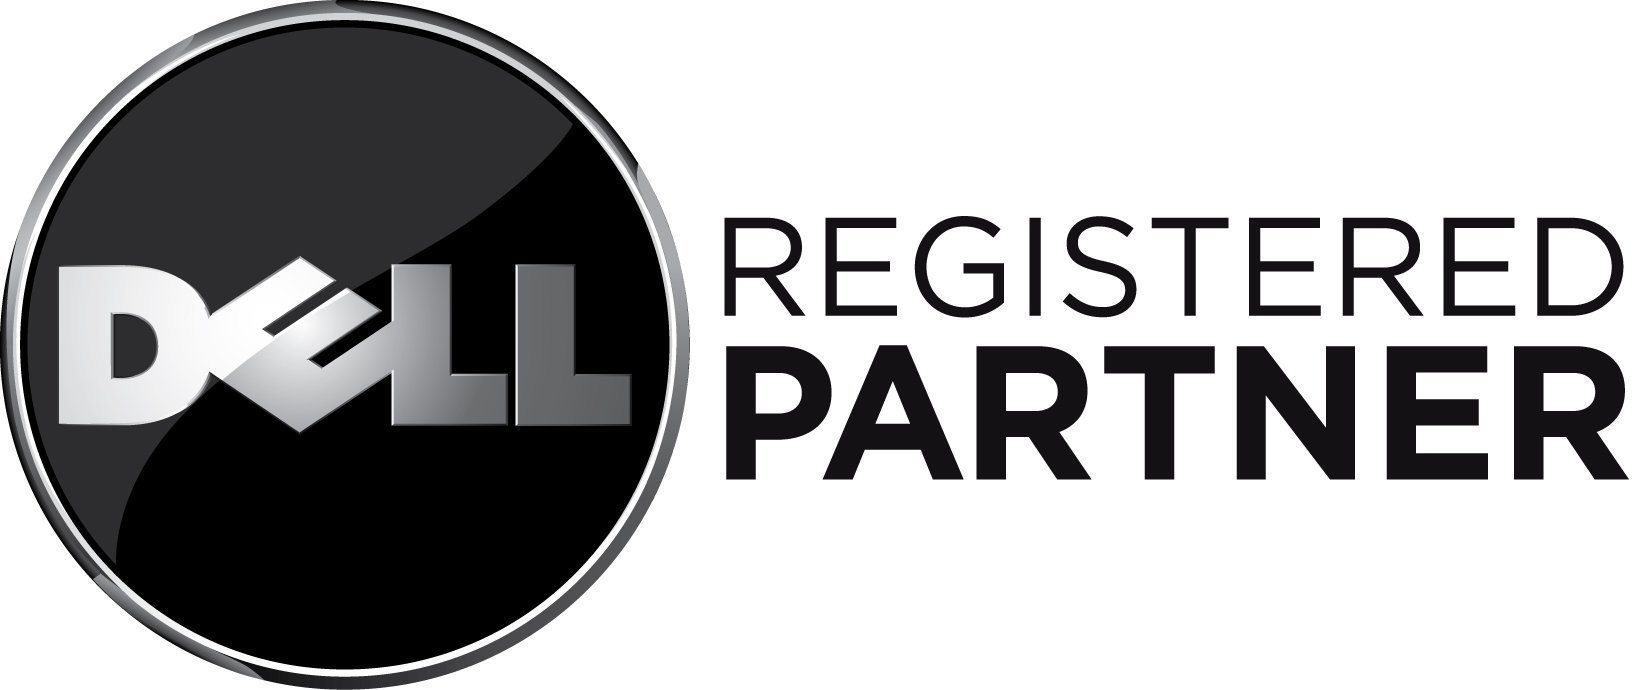 Dell-Registered-Partner-logo